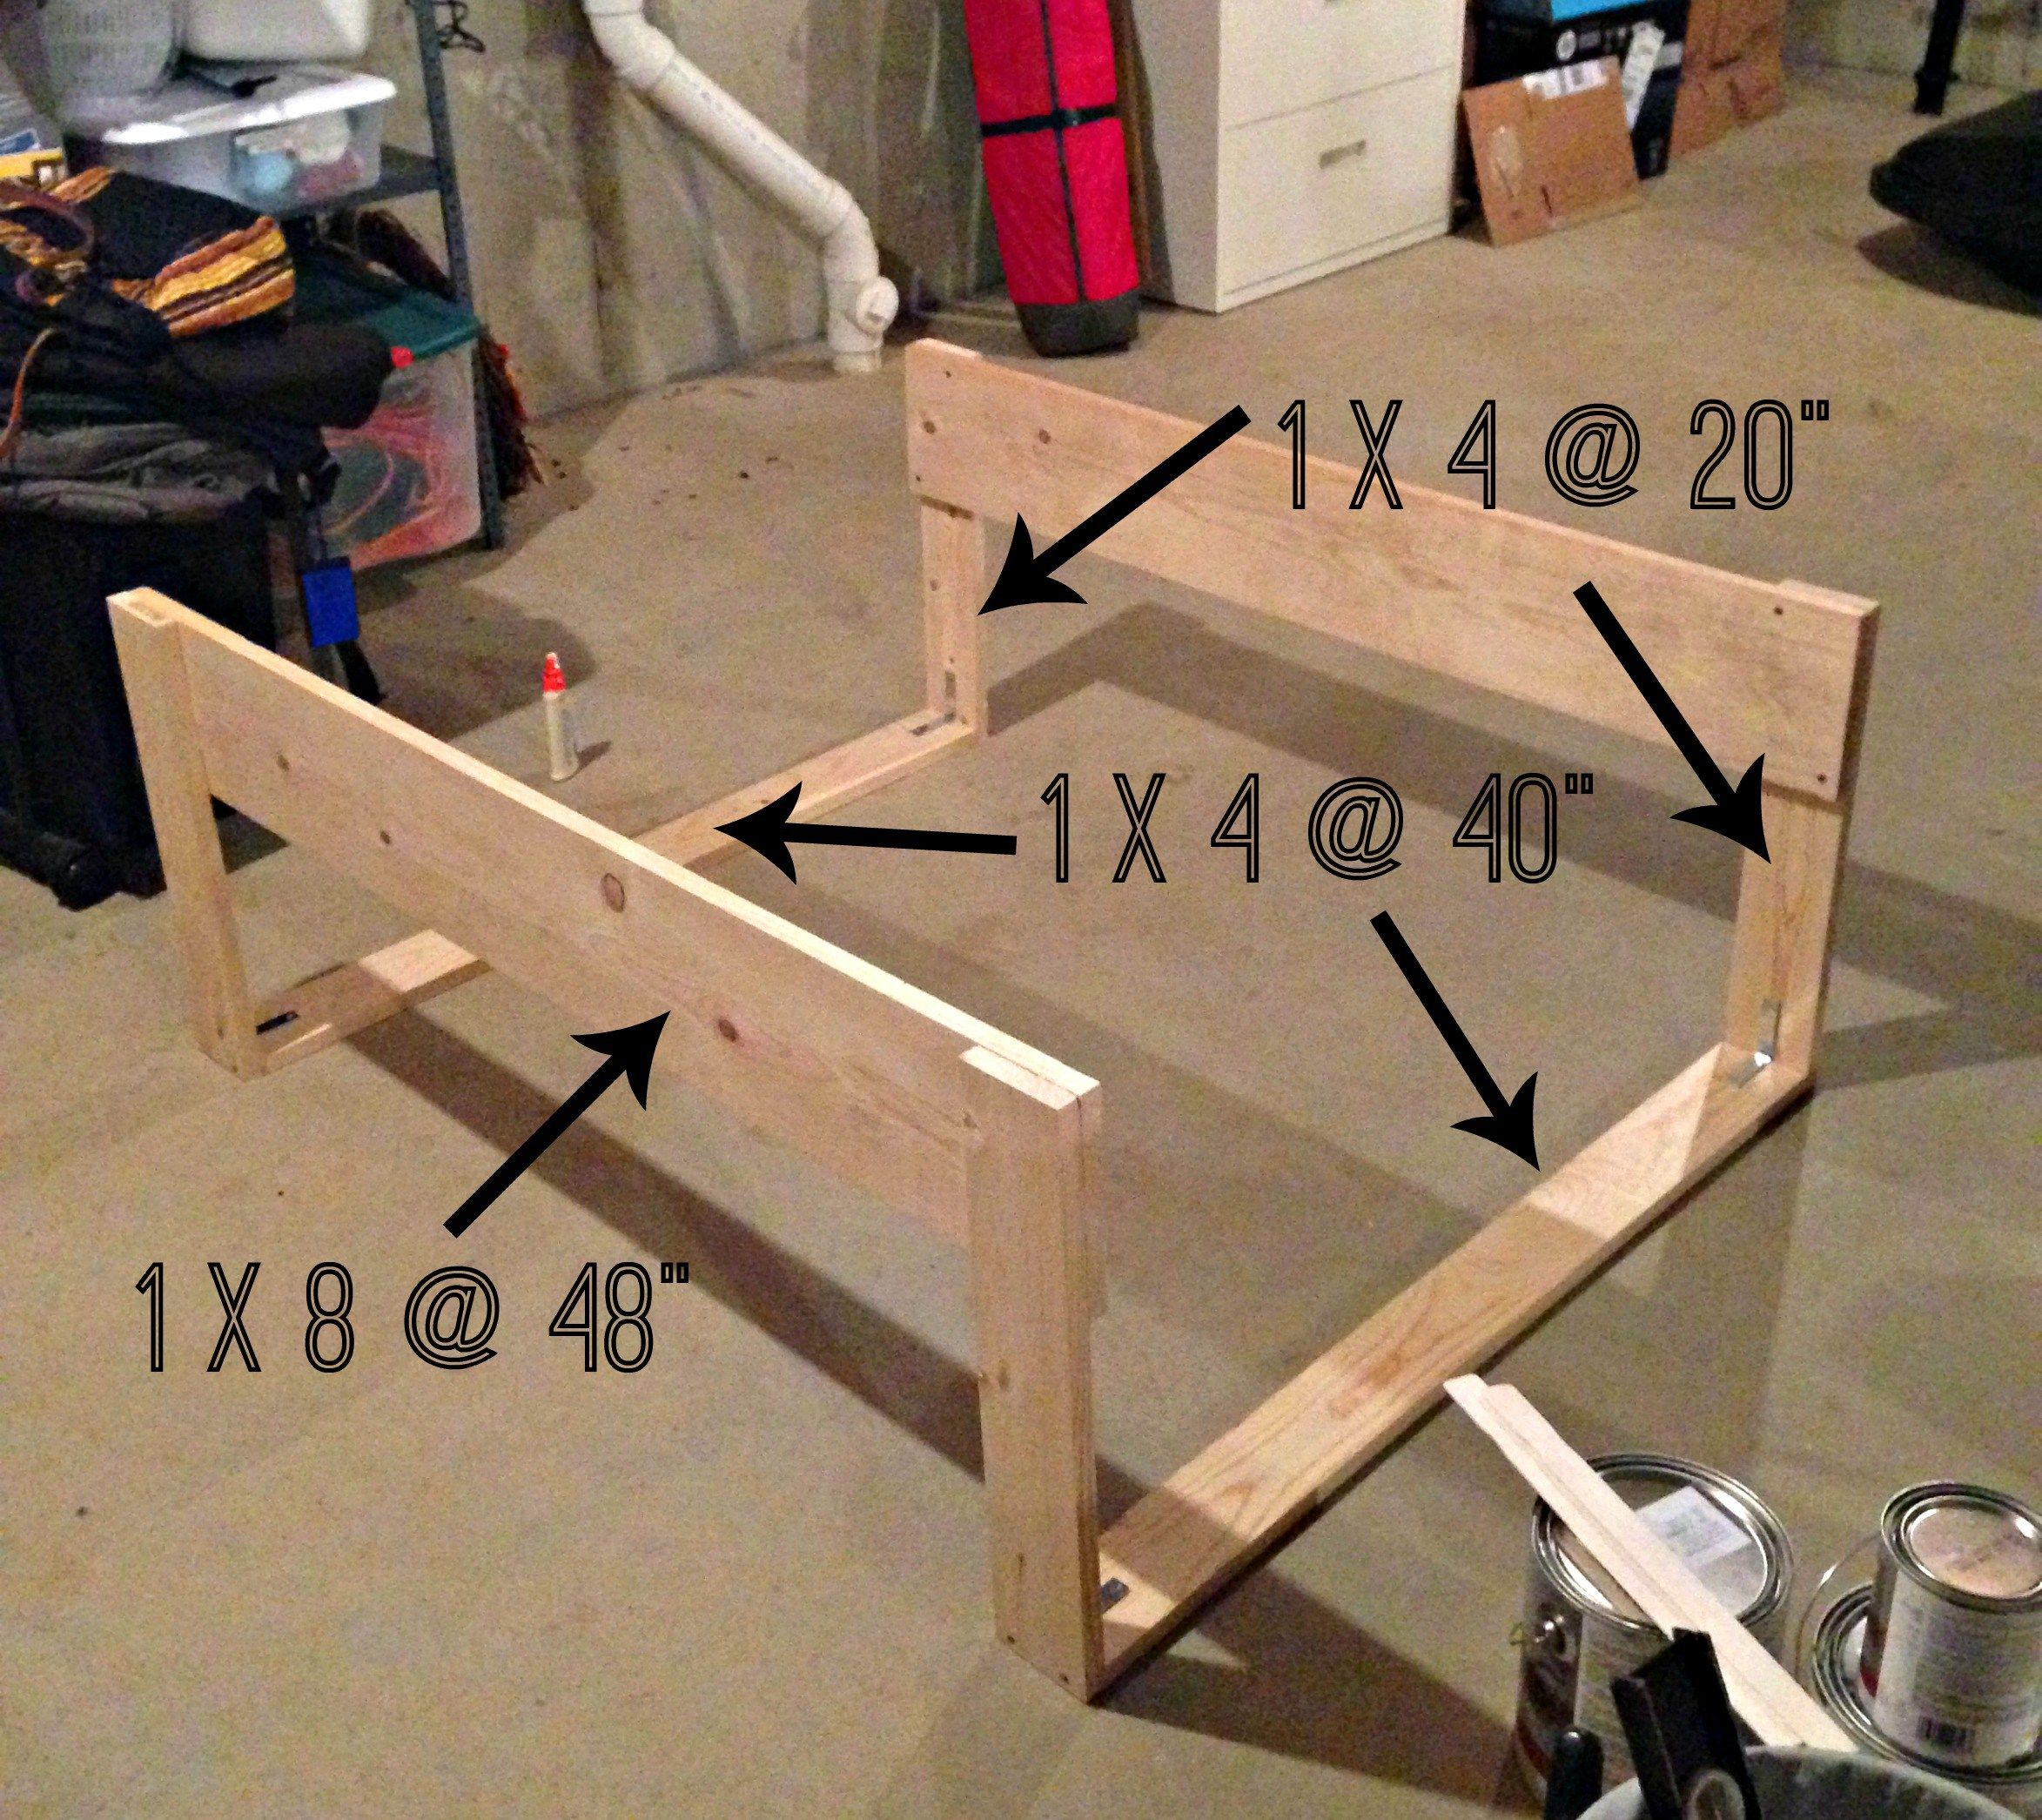 Diy Toddler Bed Rails Diy Toddler Bed Bed Rails For Toddlers Kids Bed Rails